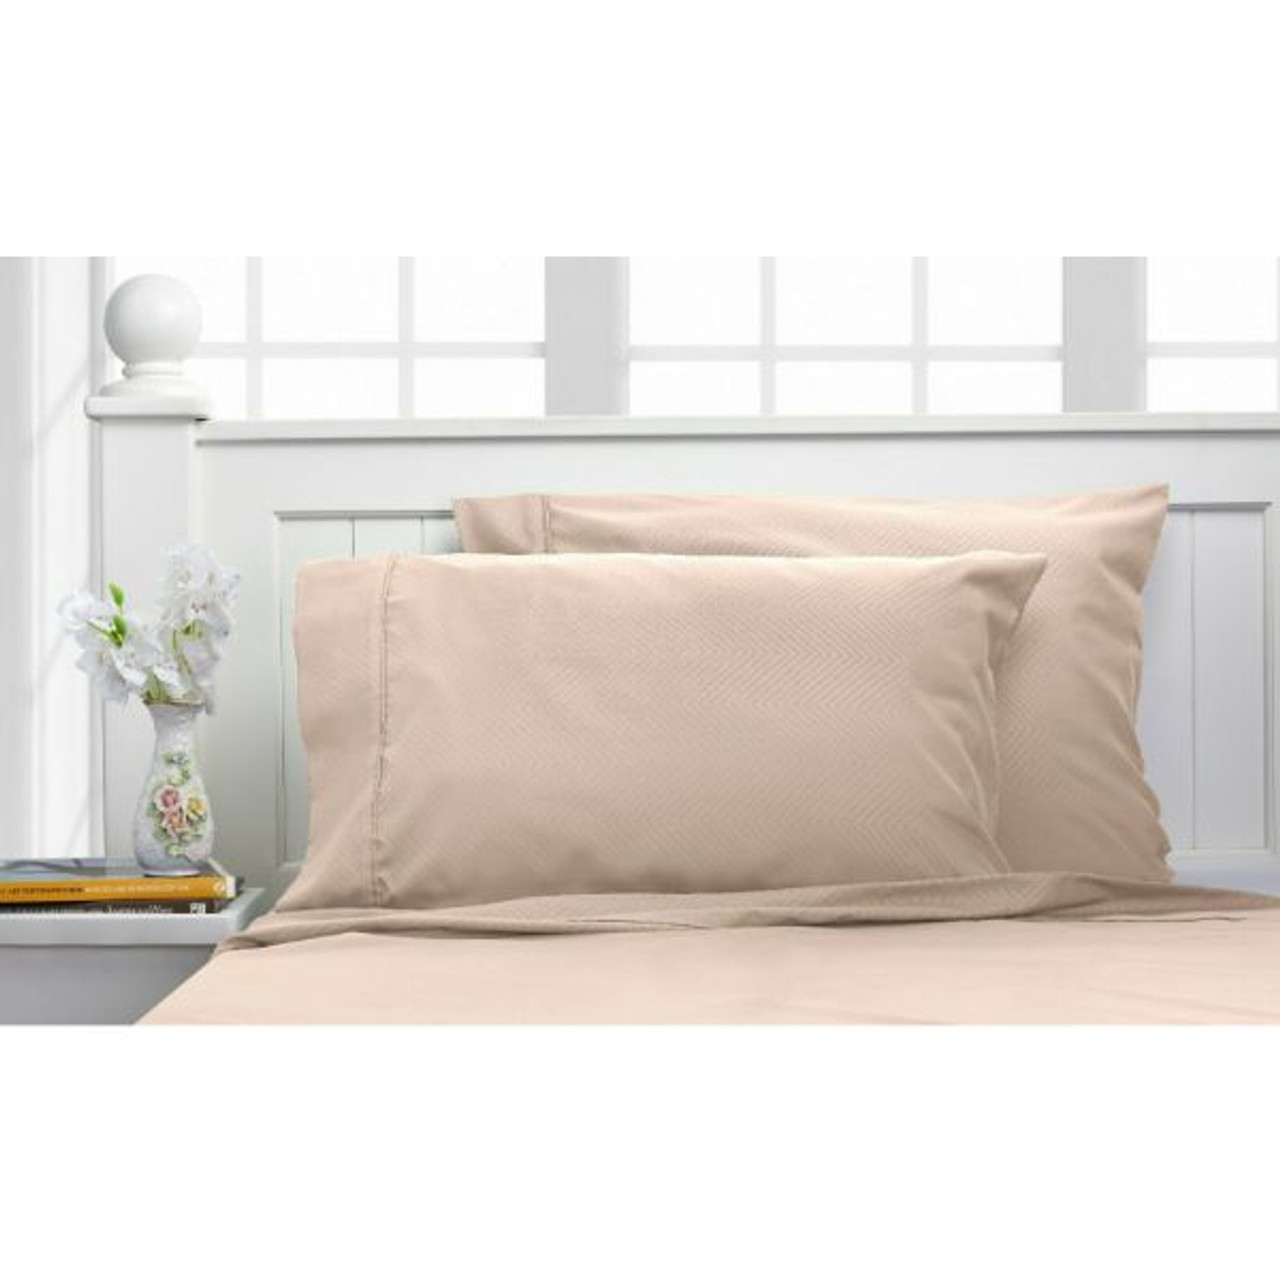 Bamboo 1800 Count Chevron Embossed Ultra Soft 4-Piece Sheet Set